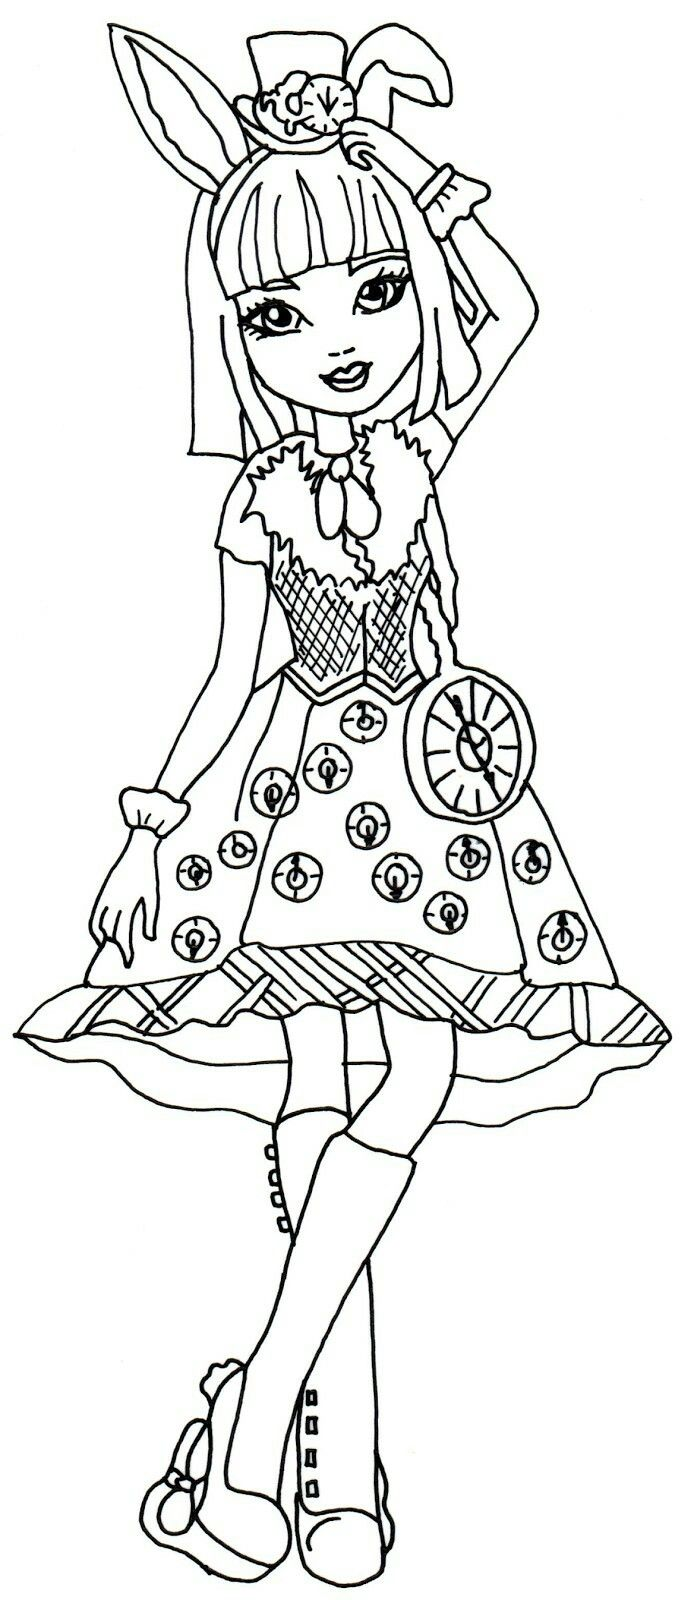 Lizzie hearts coloring page - Free Printable Ever After High Coloring Pages Bunny Blanc